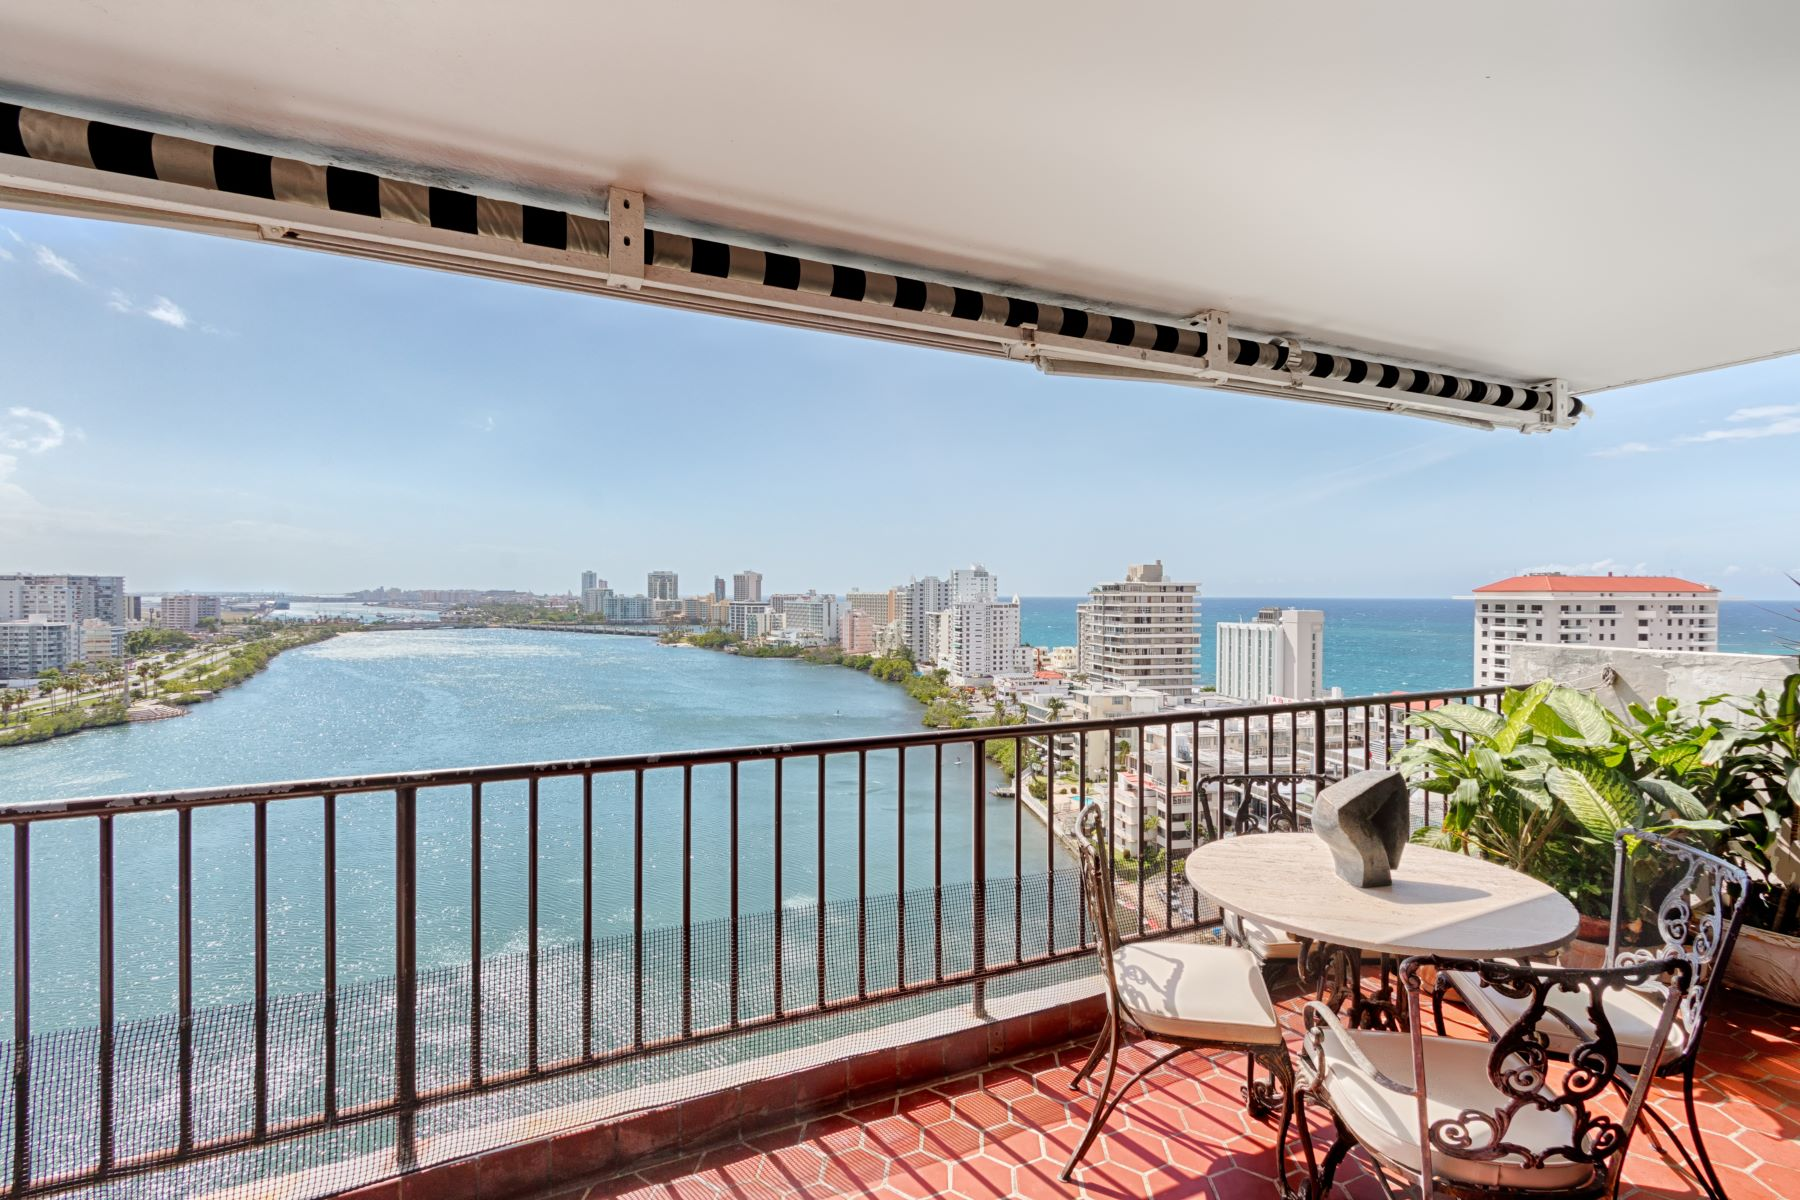 Flat for Sale at Duplex PH in the Heart of Condado Beach 6 Calle Joffre PHA San Juan, Puerto Rico 00907 Puerto Rico